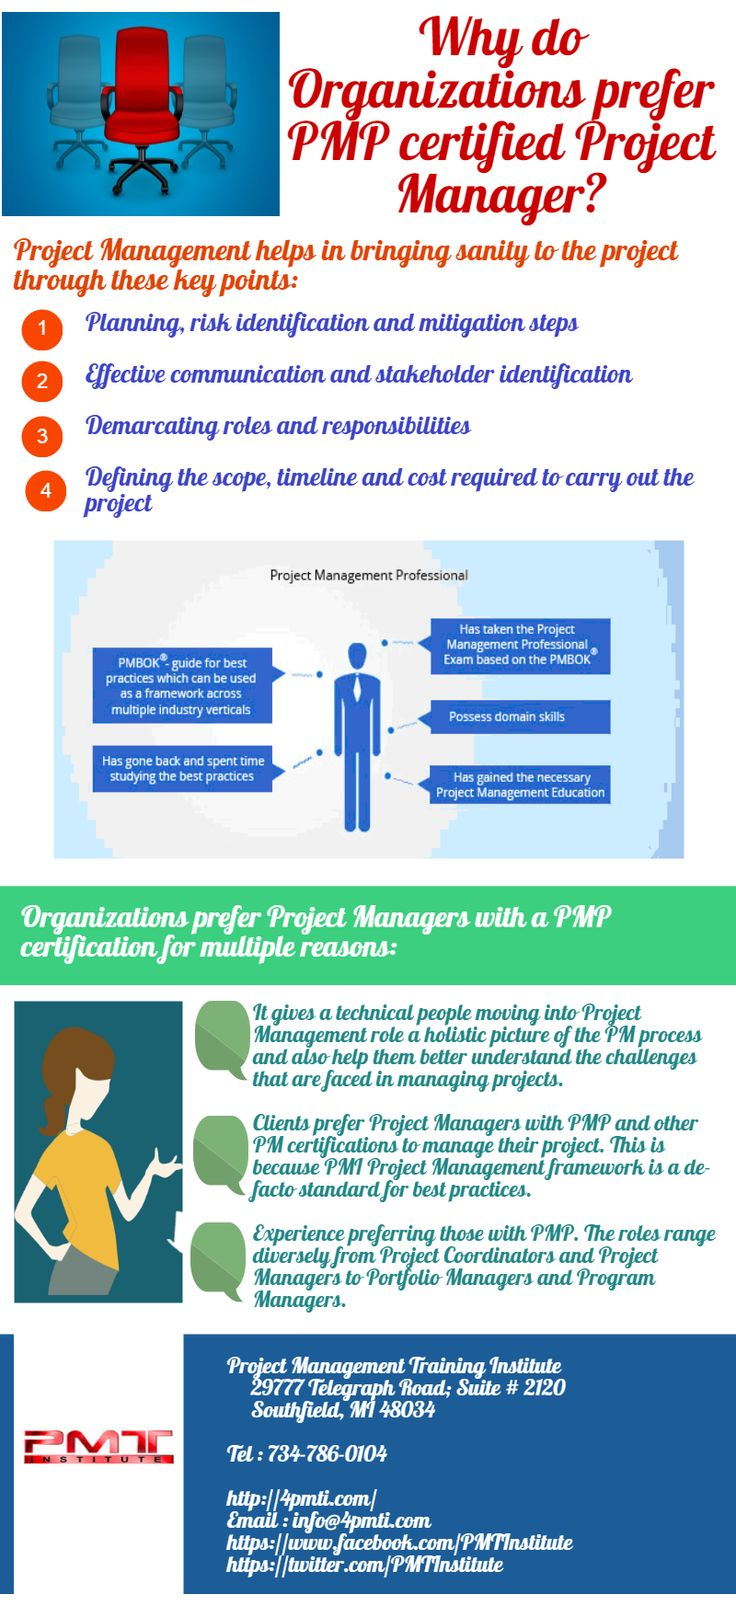 Project Management Training Institute Pmti Pmtinstitute On Pinterest